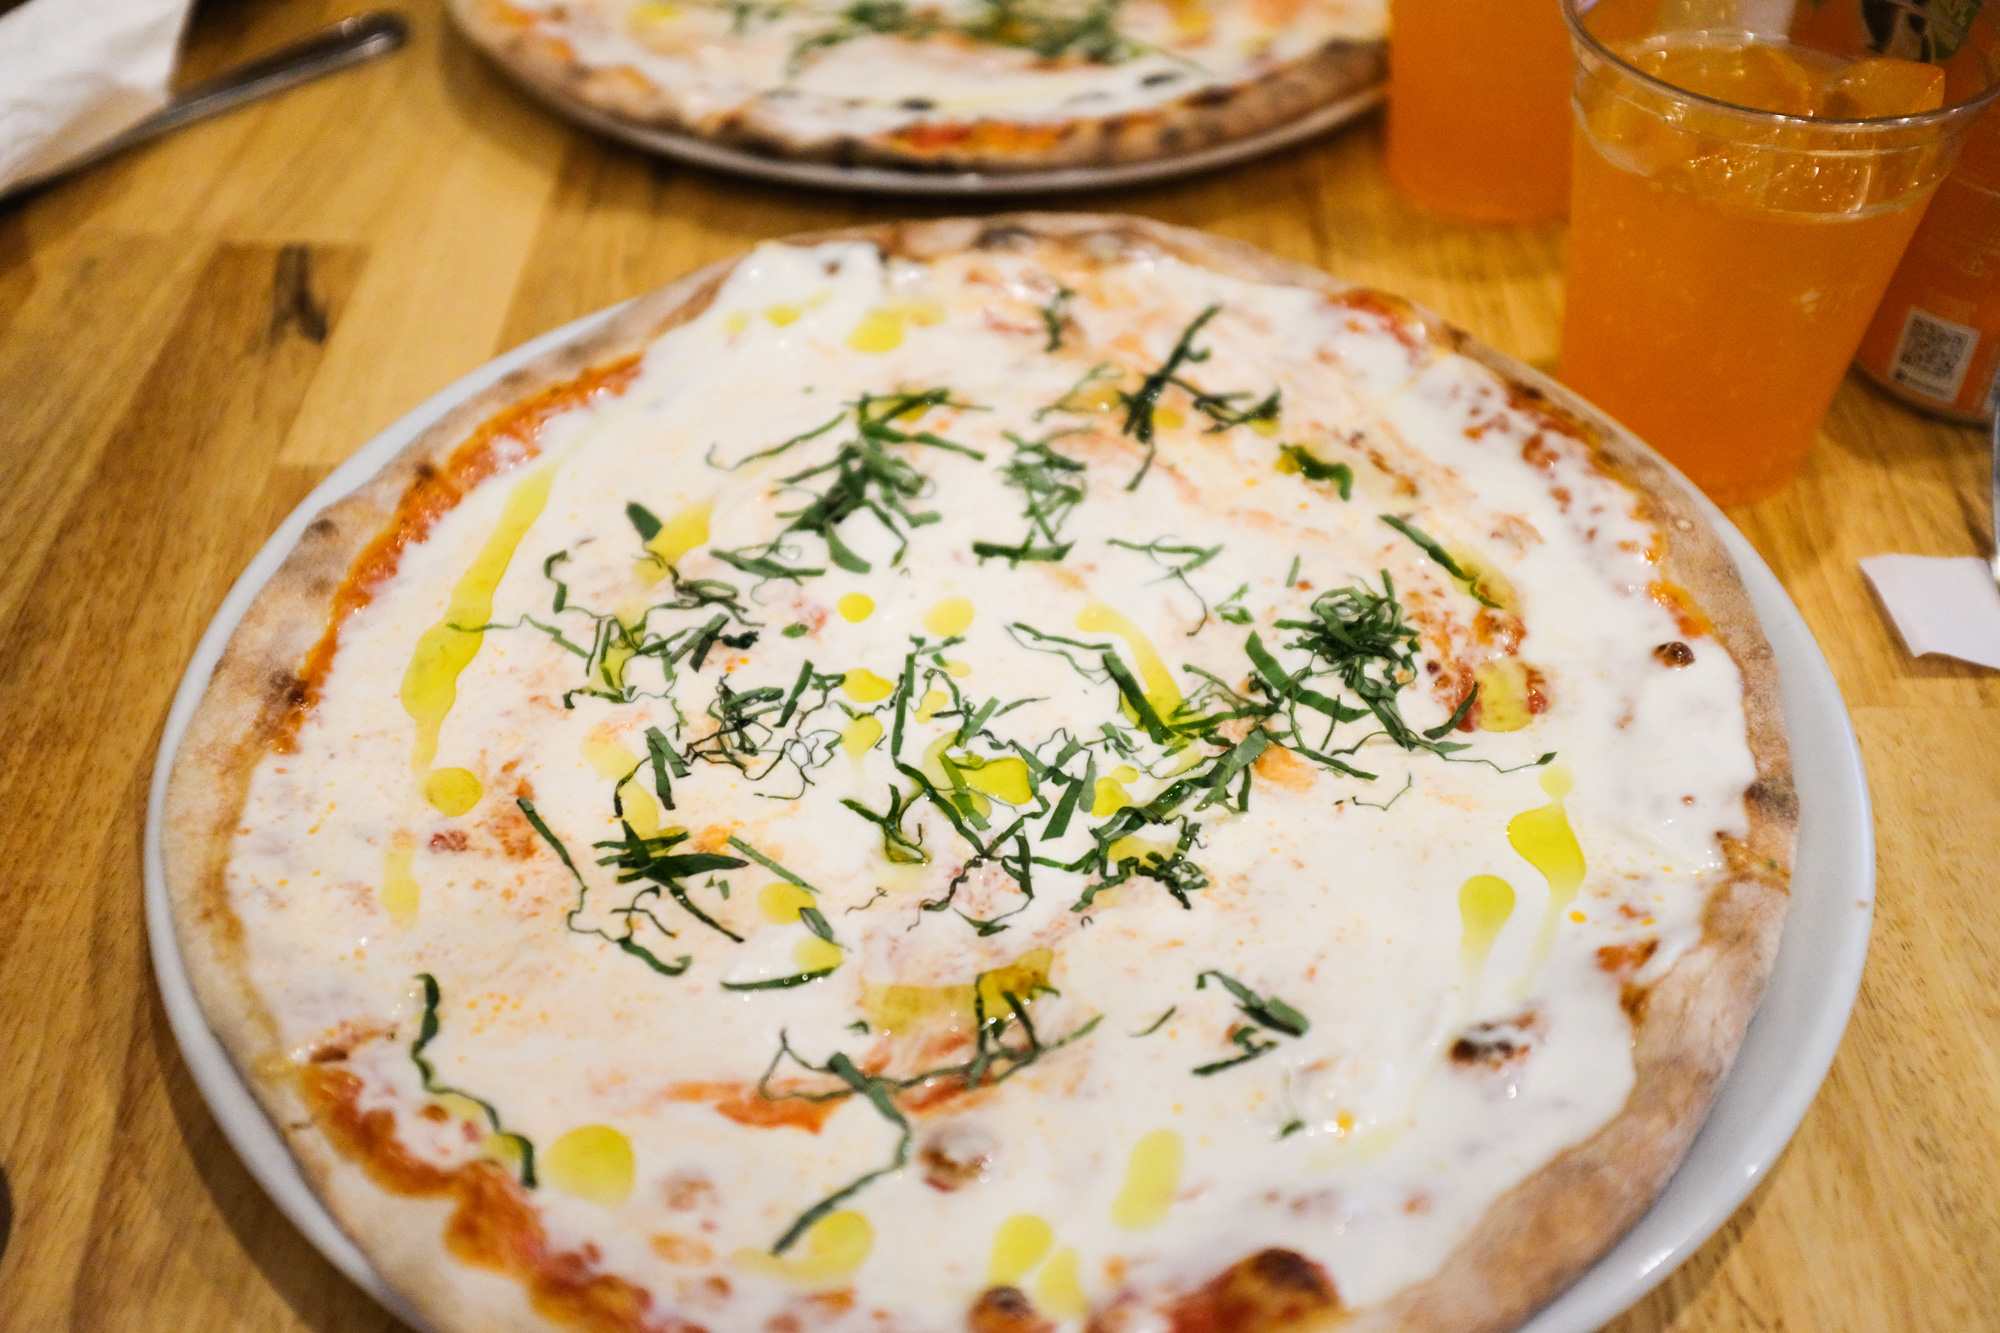 This might be my favorite pizza. Sorry NYC but this one wins. I didn't know about  Mister 01  until I moved back from NYC and worked in Brickell. The first pizza I tried from them was the Star Luca and it was good. But this truffle oil and burrata concoction really did it for me.